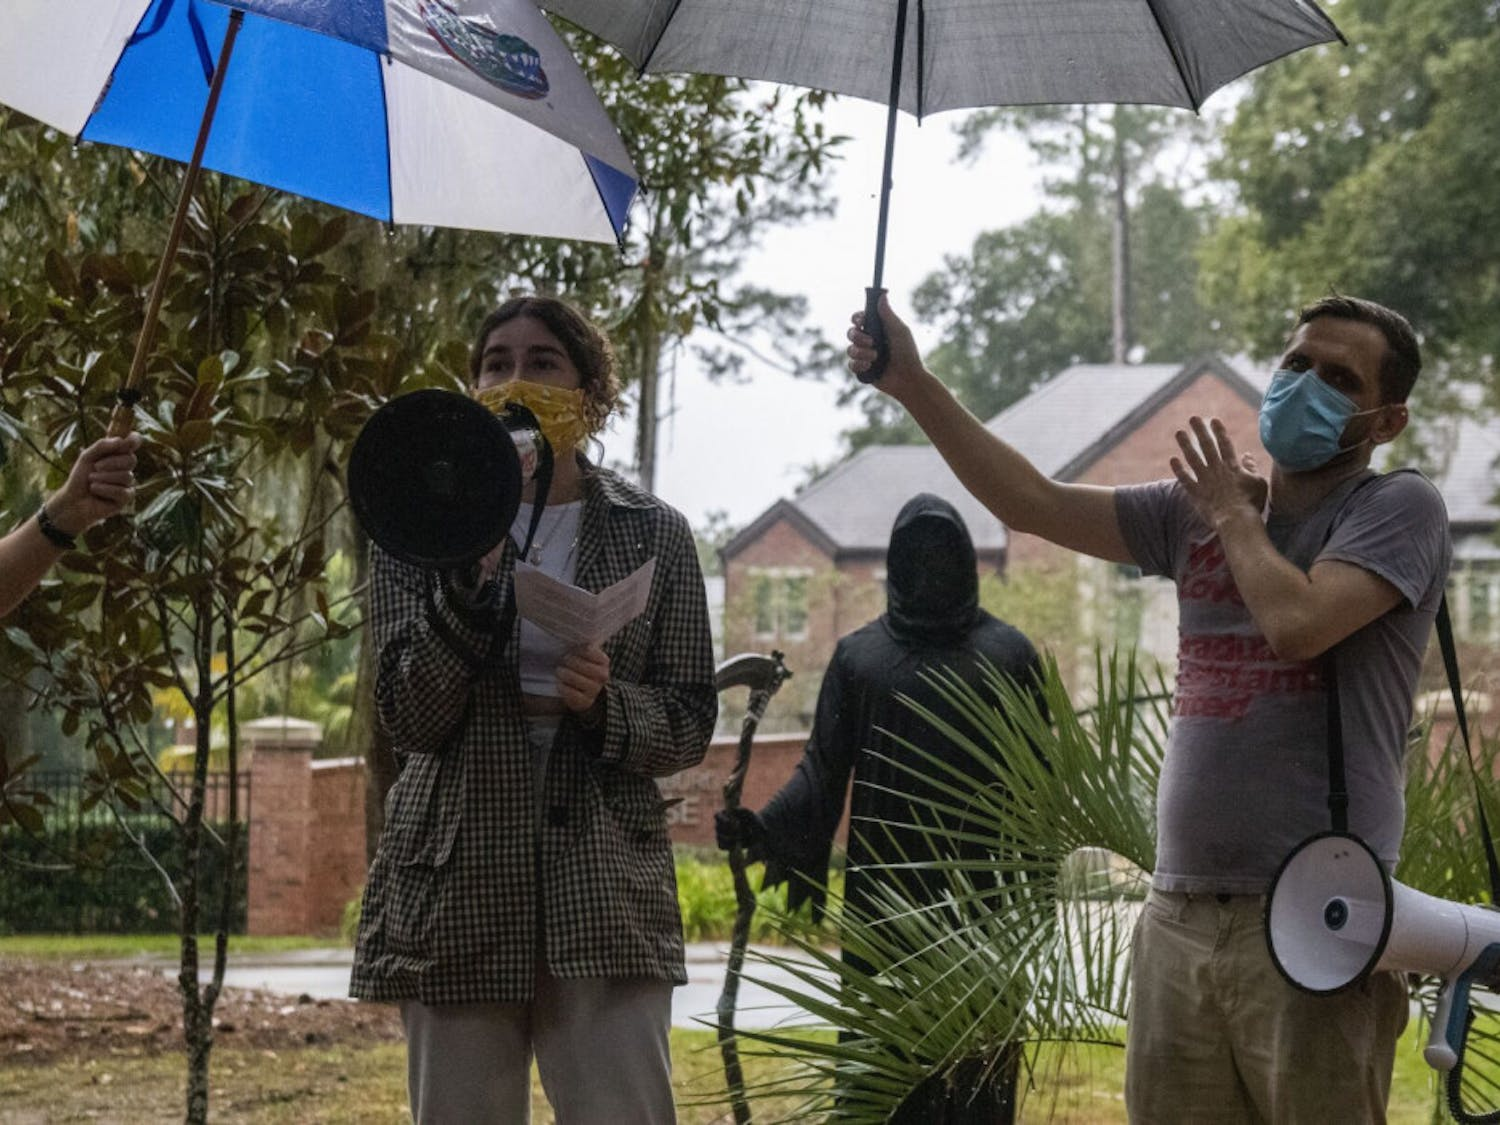 Cristina Cabada, the Alachua County Labor Coalition Coordinator, speaks to a crowd assembled across the street from the Dasburg House during a protest against in-person classes this spring at UF, on Sunday, Nov. 1, 2020.